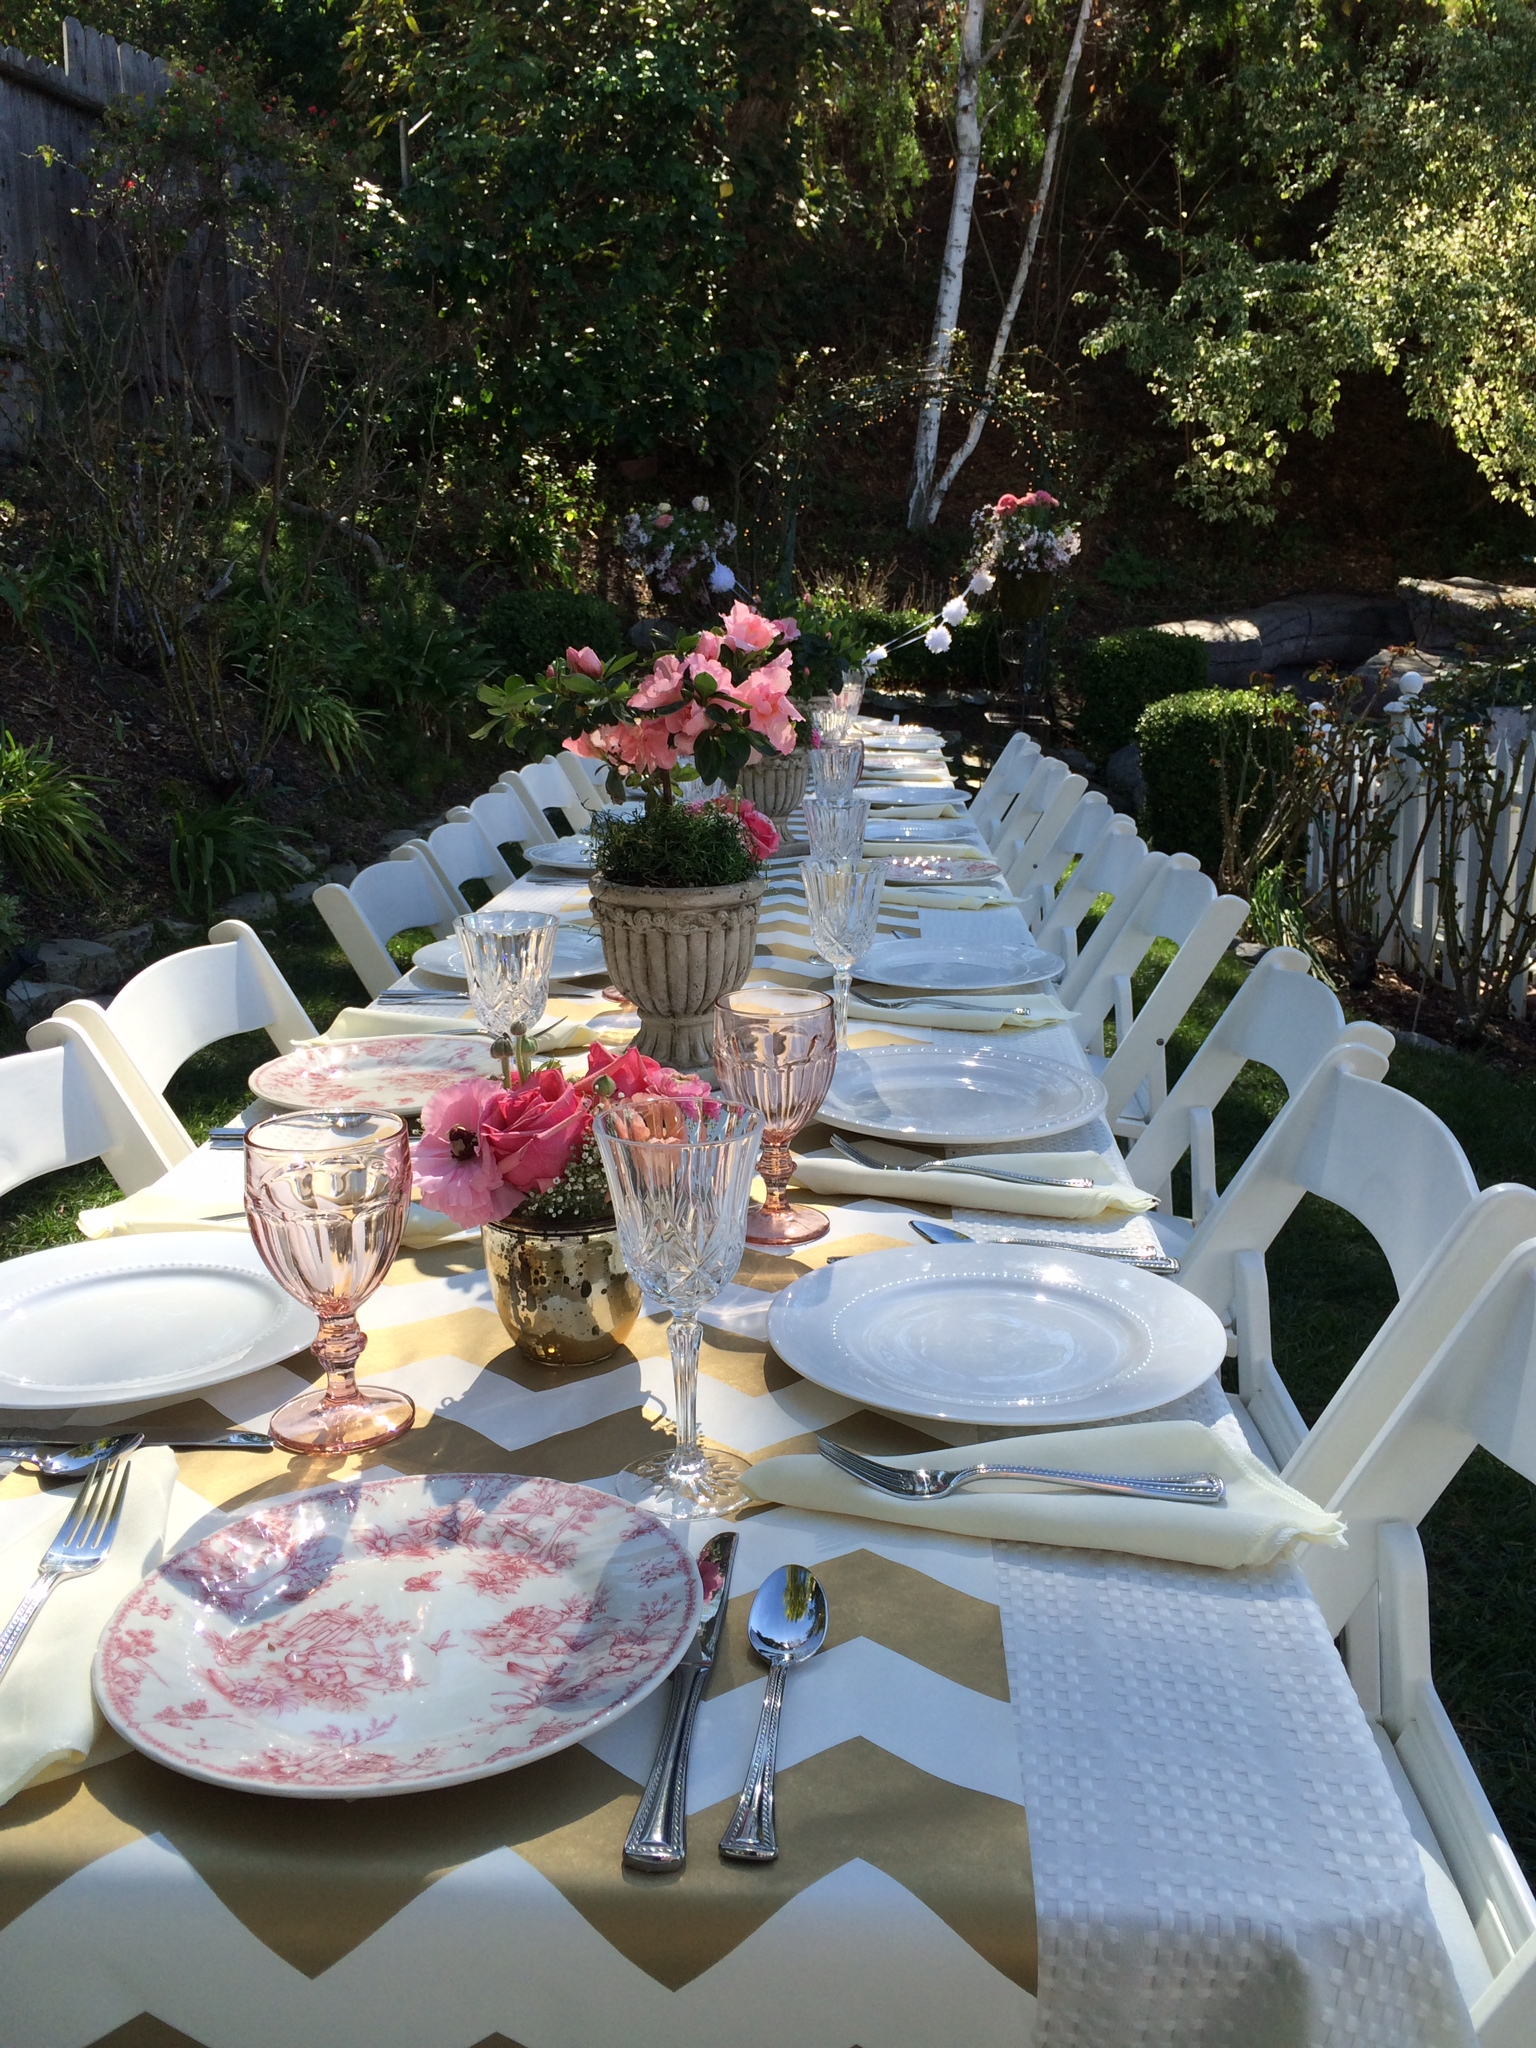 Light Afternoon Tea Is Best For Super Casual Tea Parties Or Springtime Garden  Parties. It Is Easy To Put Together Since It Consists Of Light Snacks  Paired ...